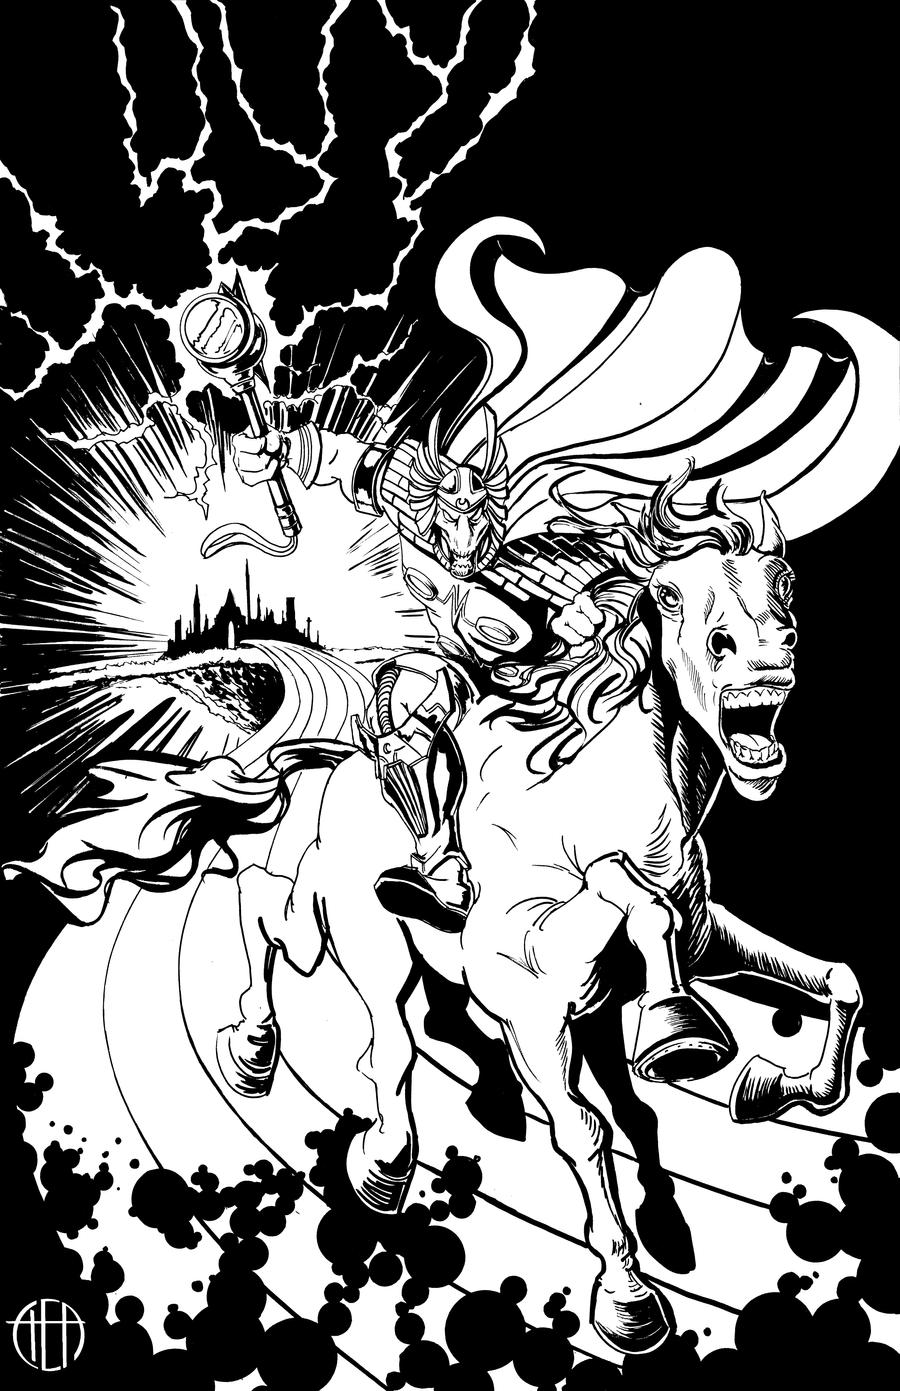 Beta Ray Bill #1 - INKS by Theamat